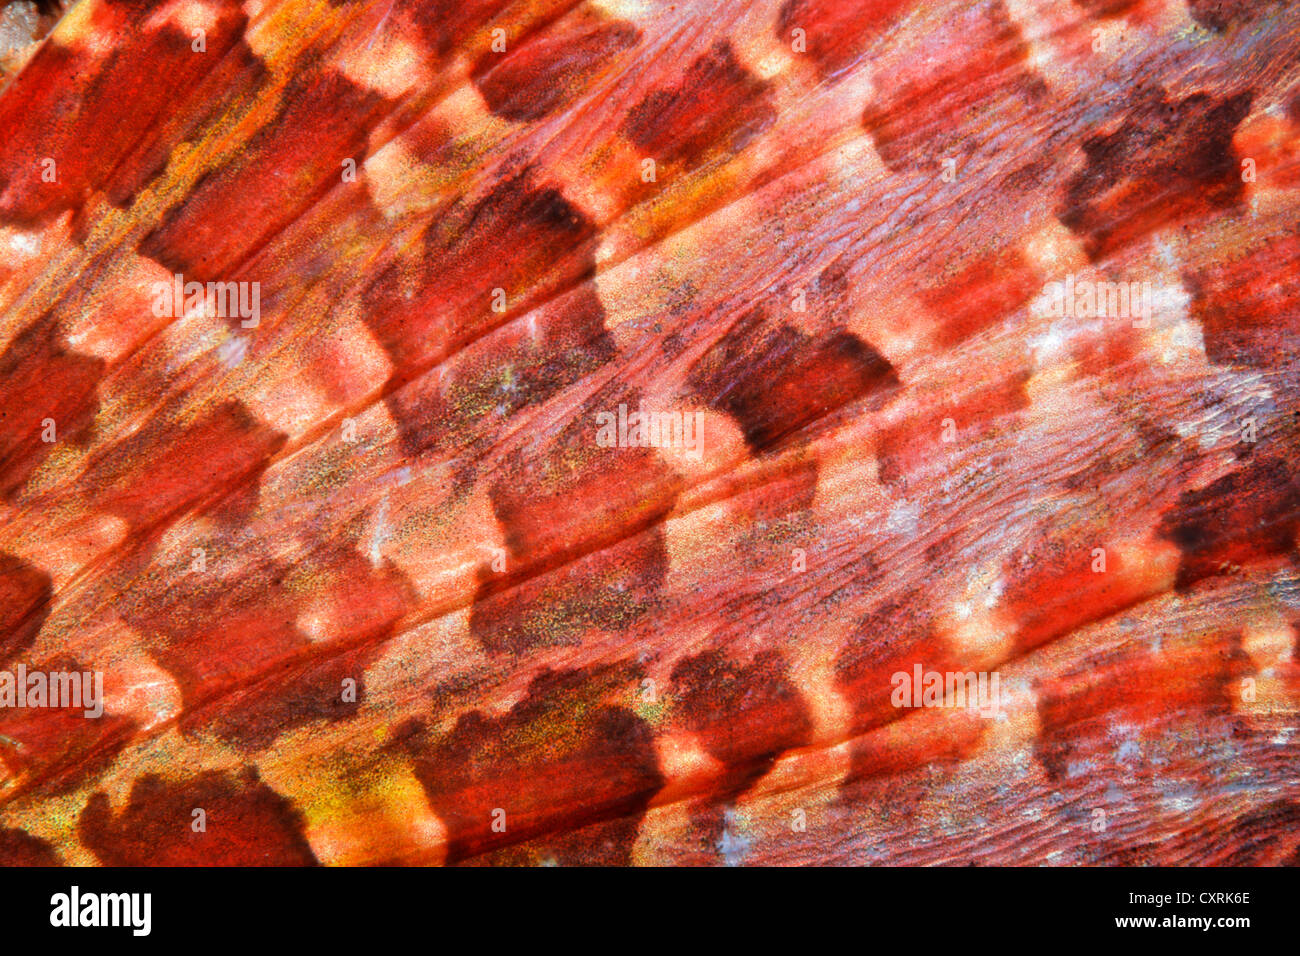 Pacific spotted scorpionfish (Scorpaena plumieri mystes), detailed view of the pectoral fin, Ponta de Sao Vicente, - Stock Image